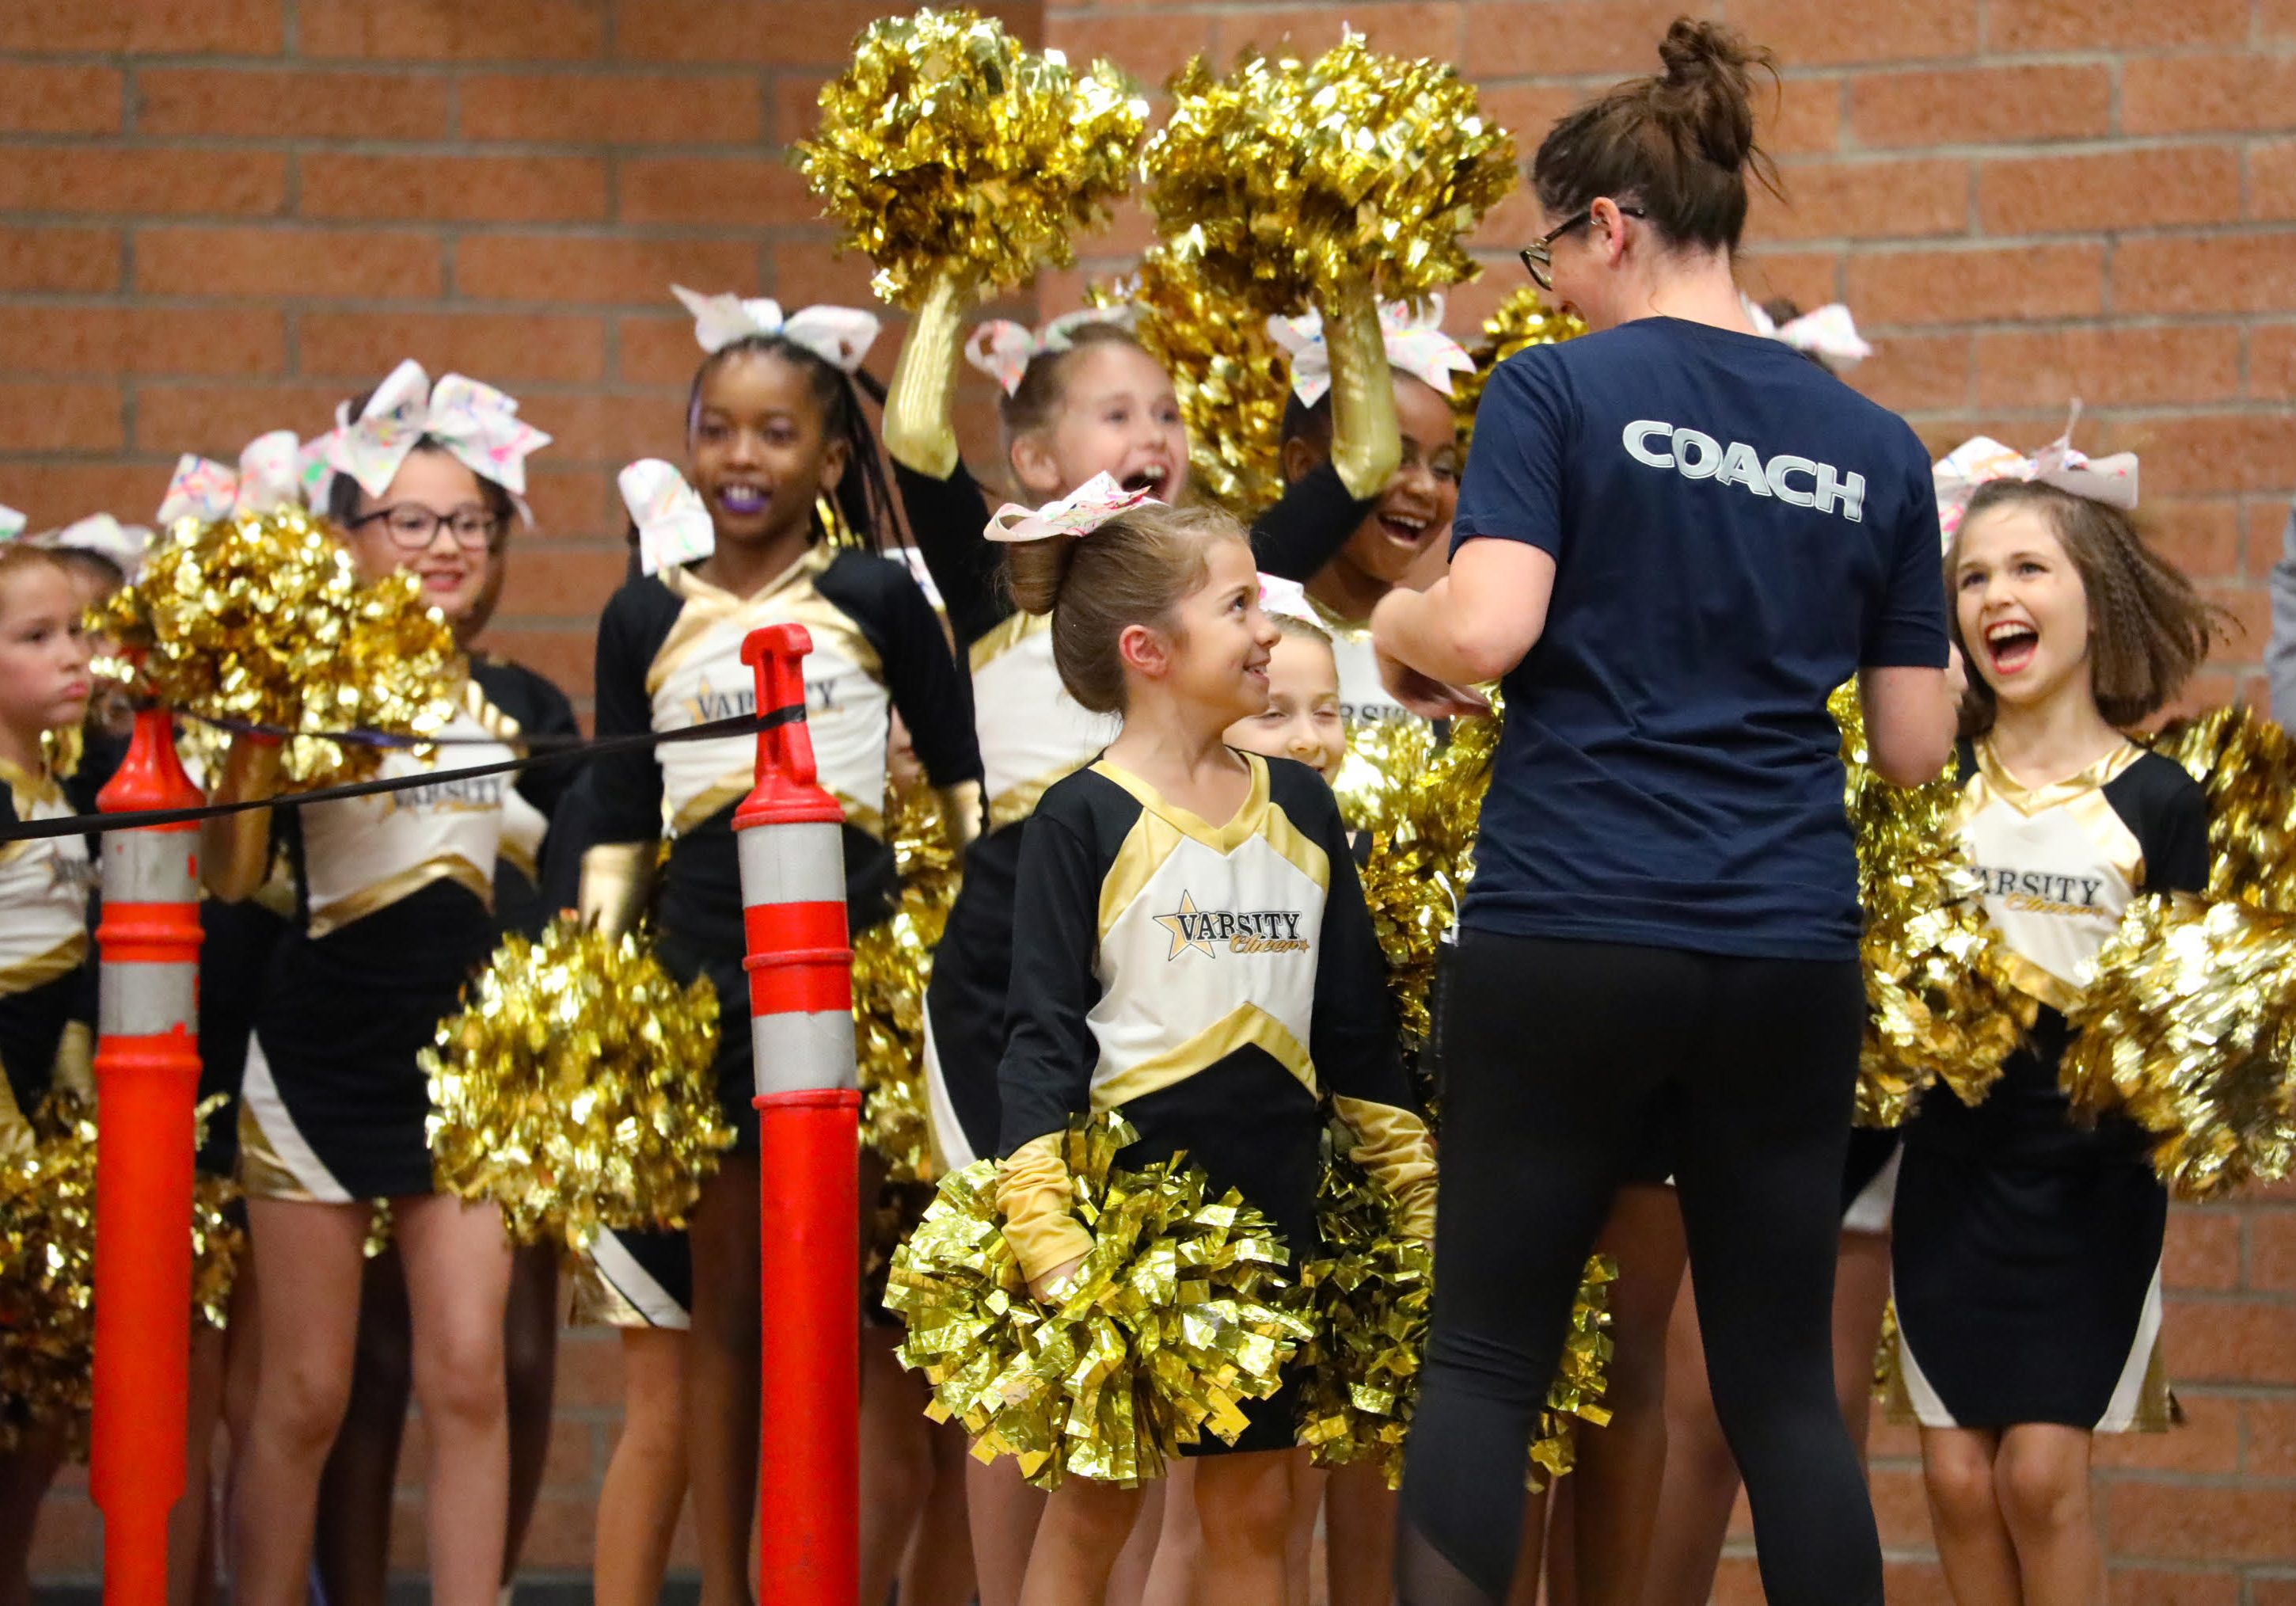 create a winning team with youth sports